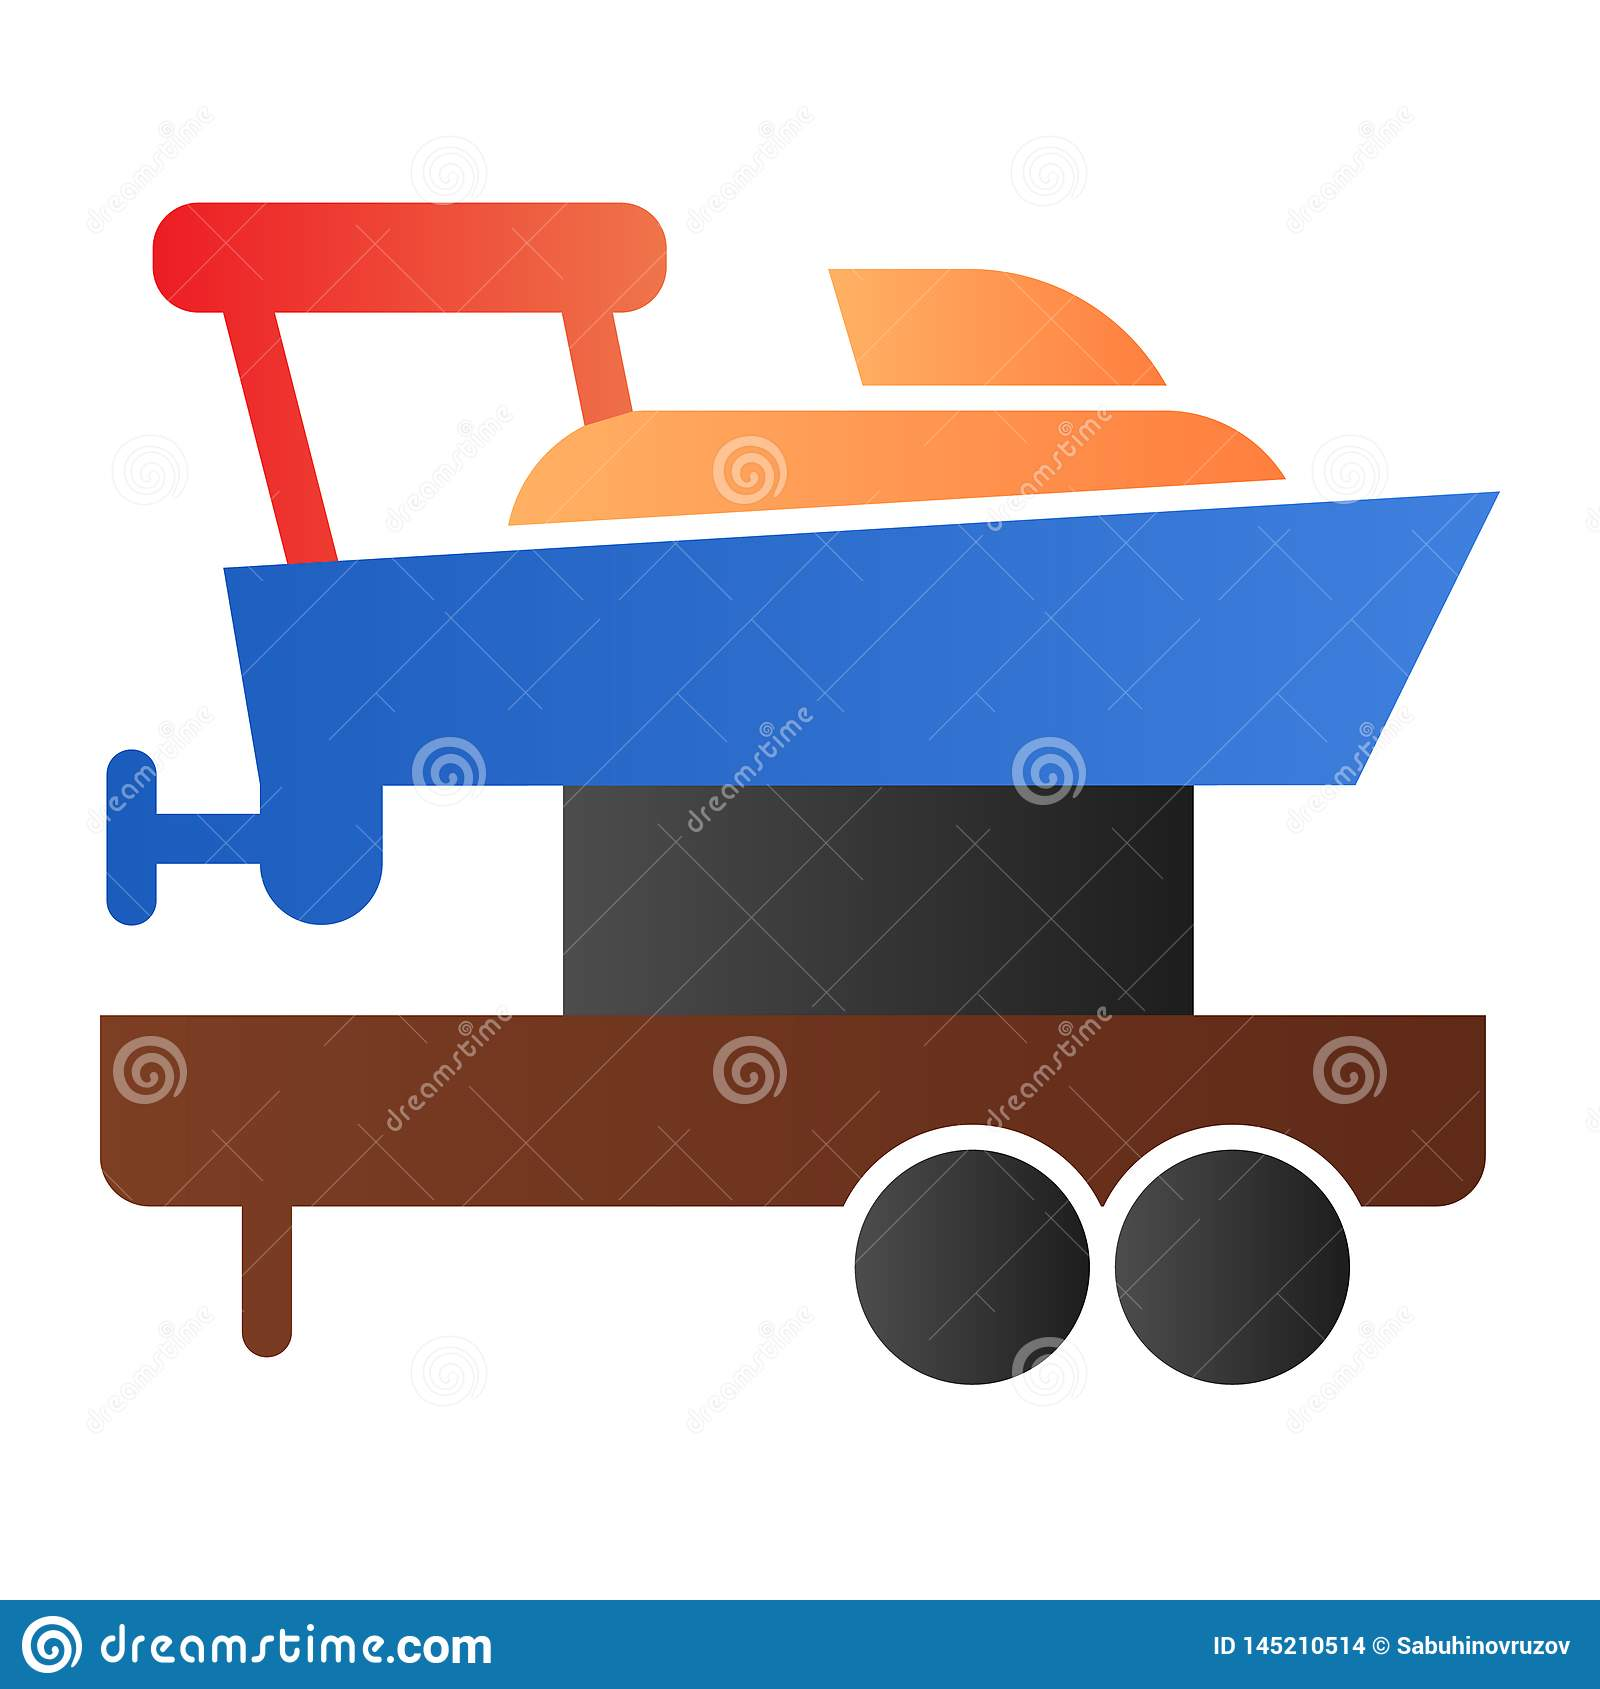 Sailboat on truck flat icon. Boat with trailer color icons in trendy flat style. Ship transportation gradient style